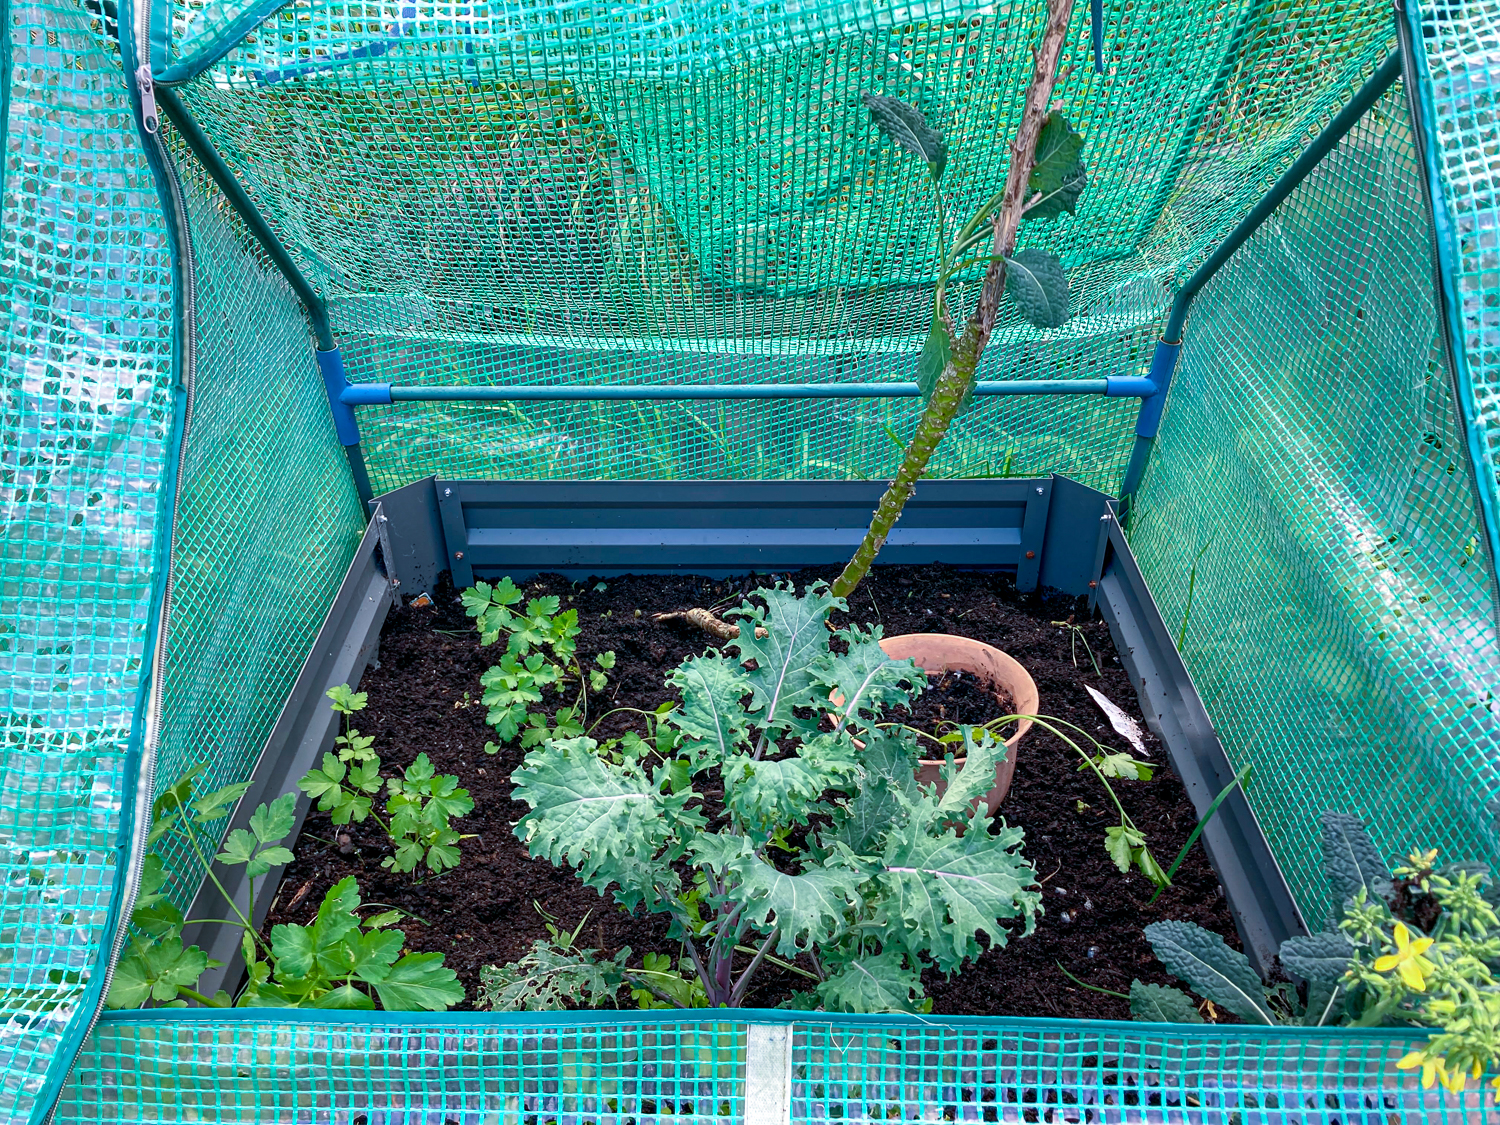 A weeded vegetable bed with parsley and two different types of kale